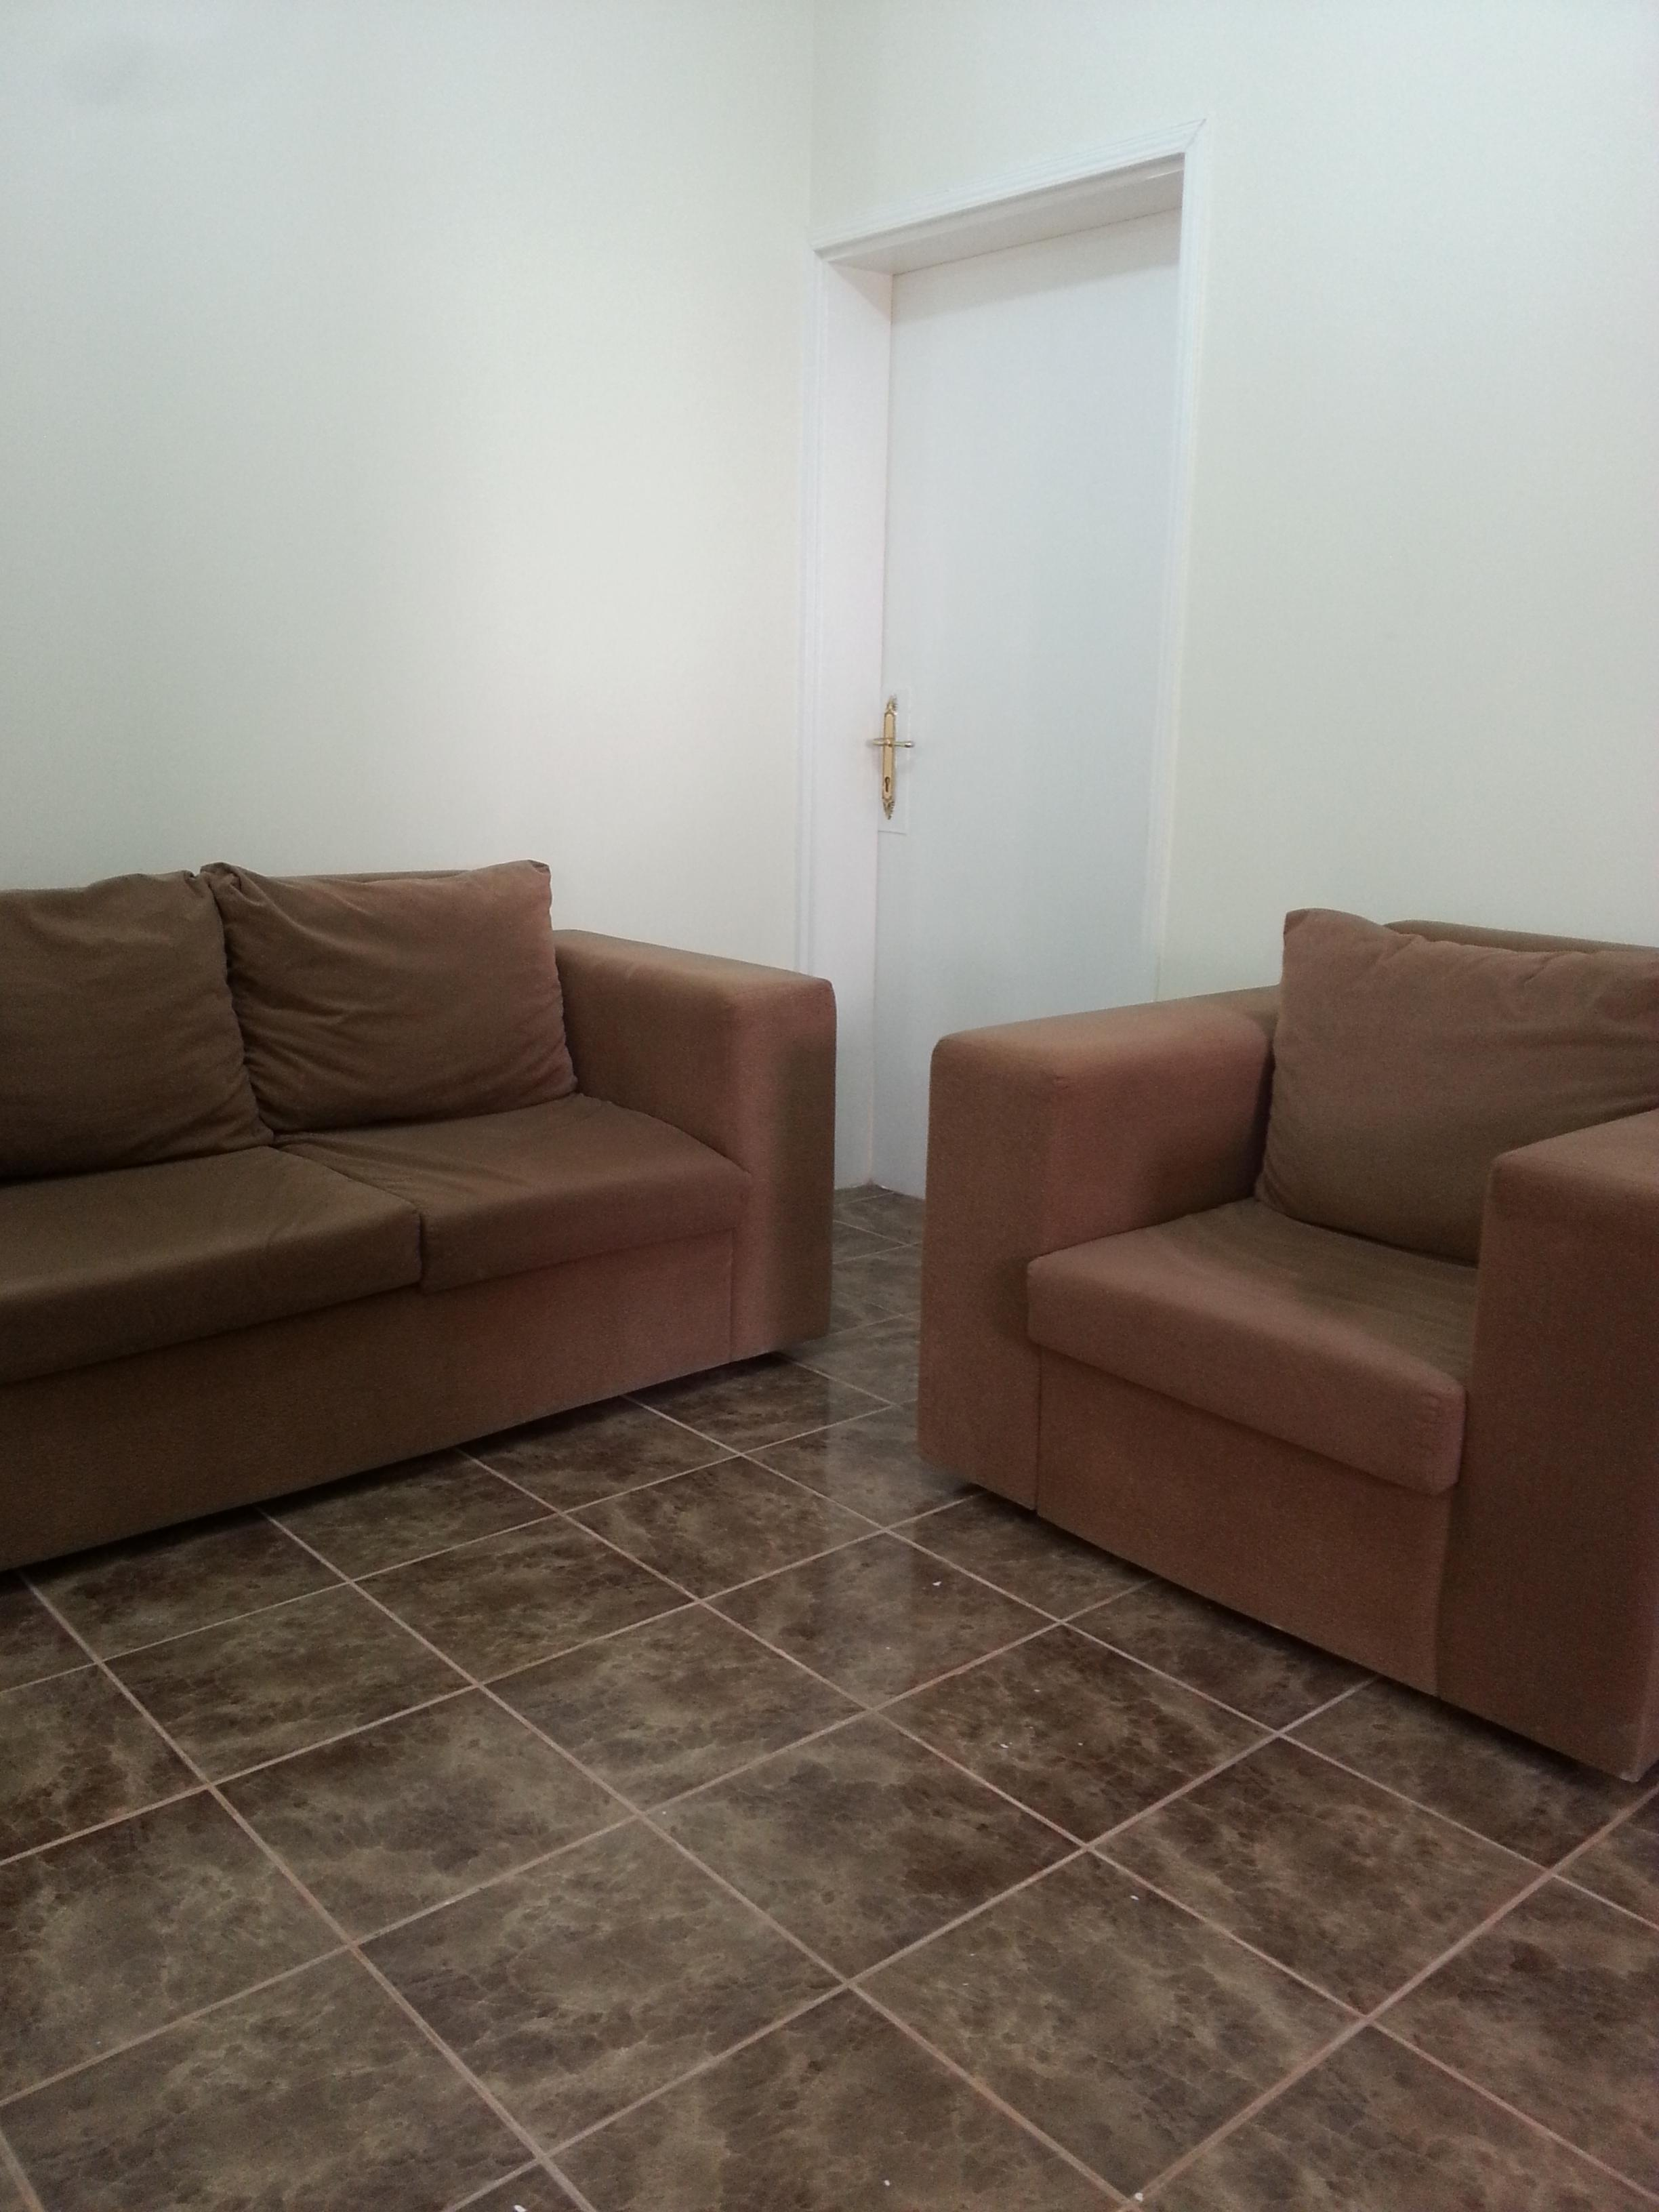 1 room for rent in a 5bhk flat in old airport matar qadeem pizza